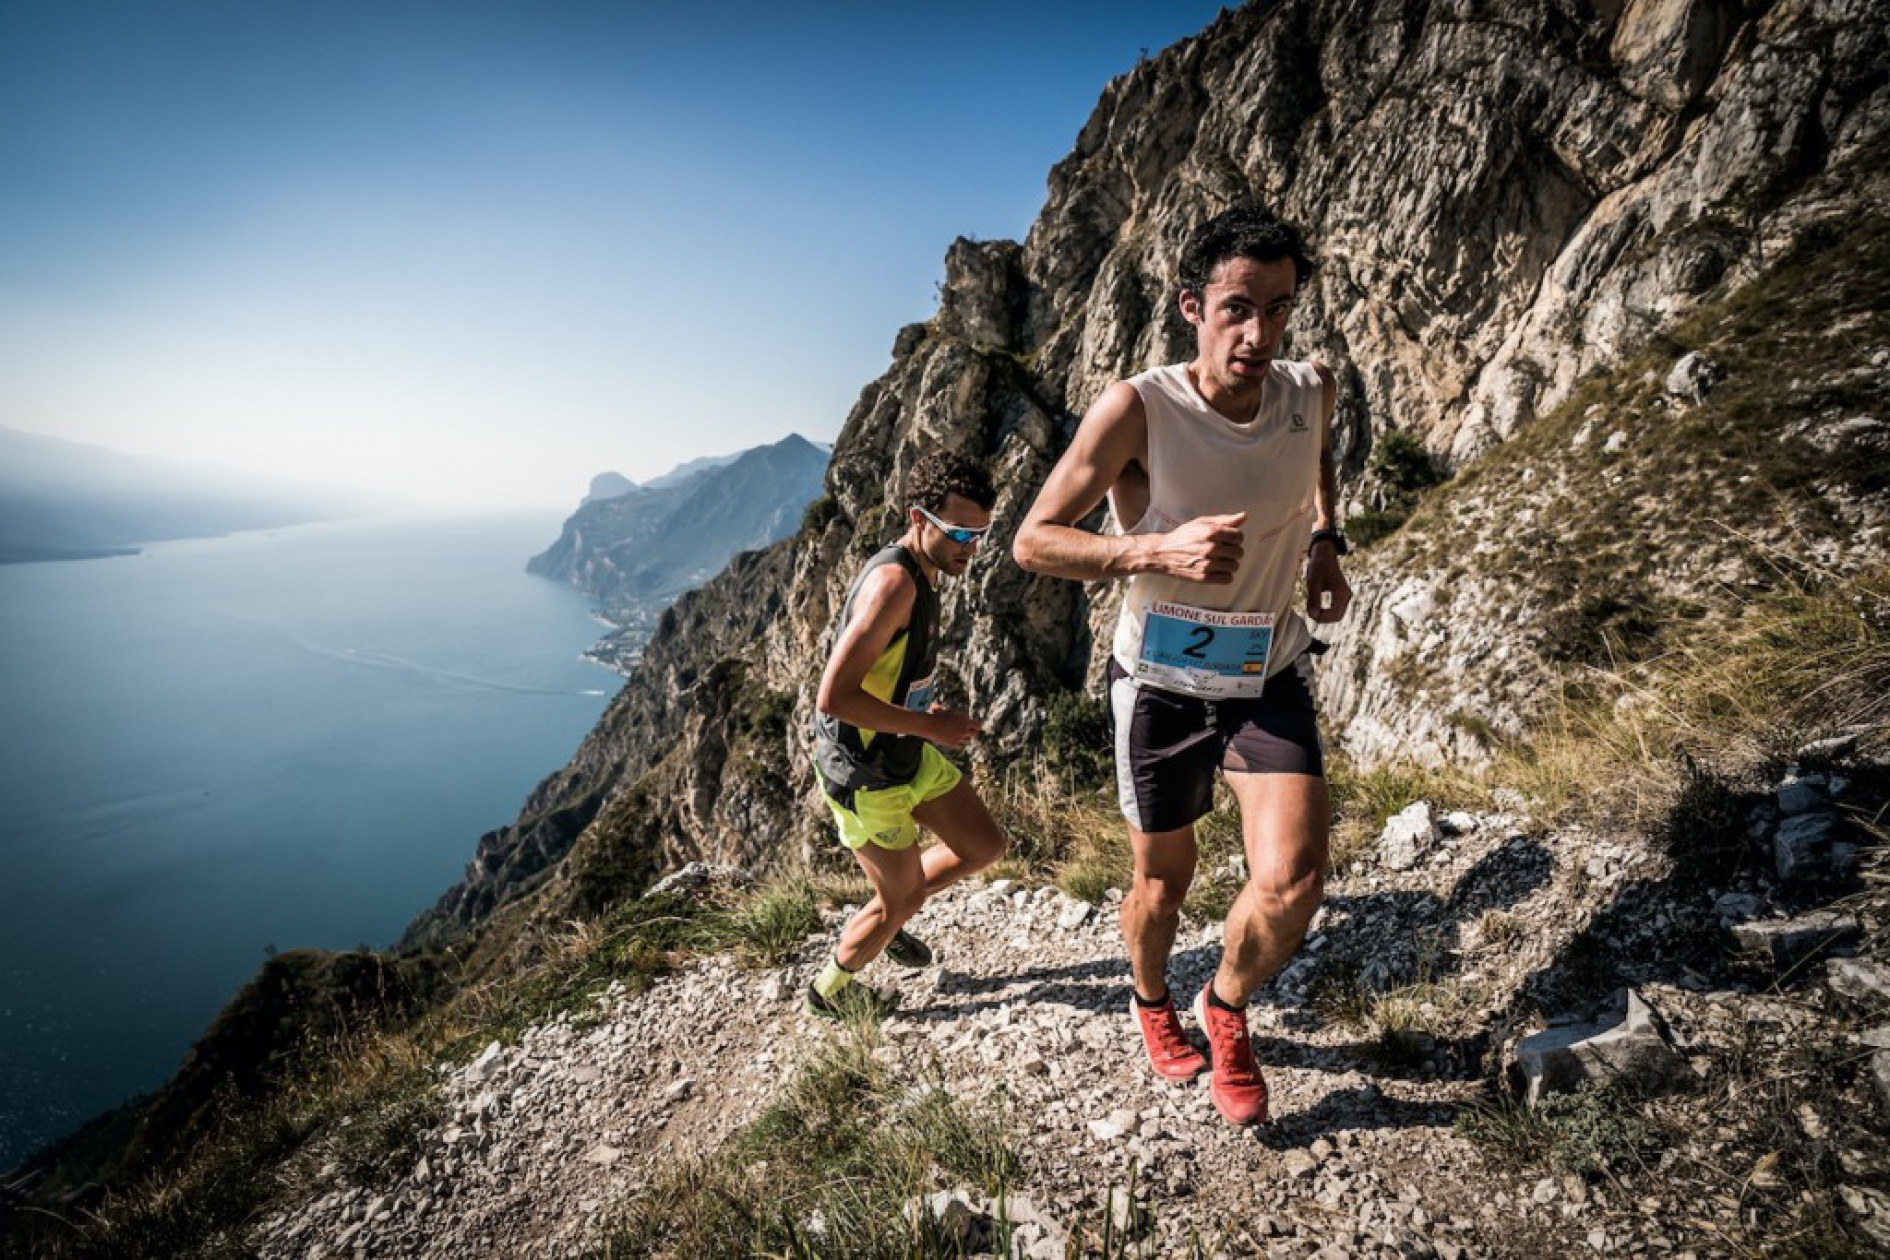 Kilian Jornet, champion in the general ranking in the Migu Run Skyrunner World Series